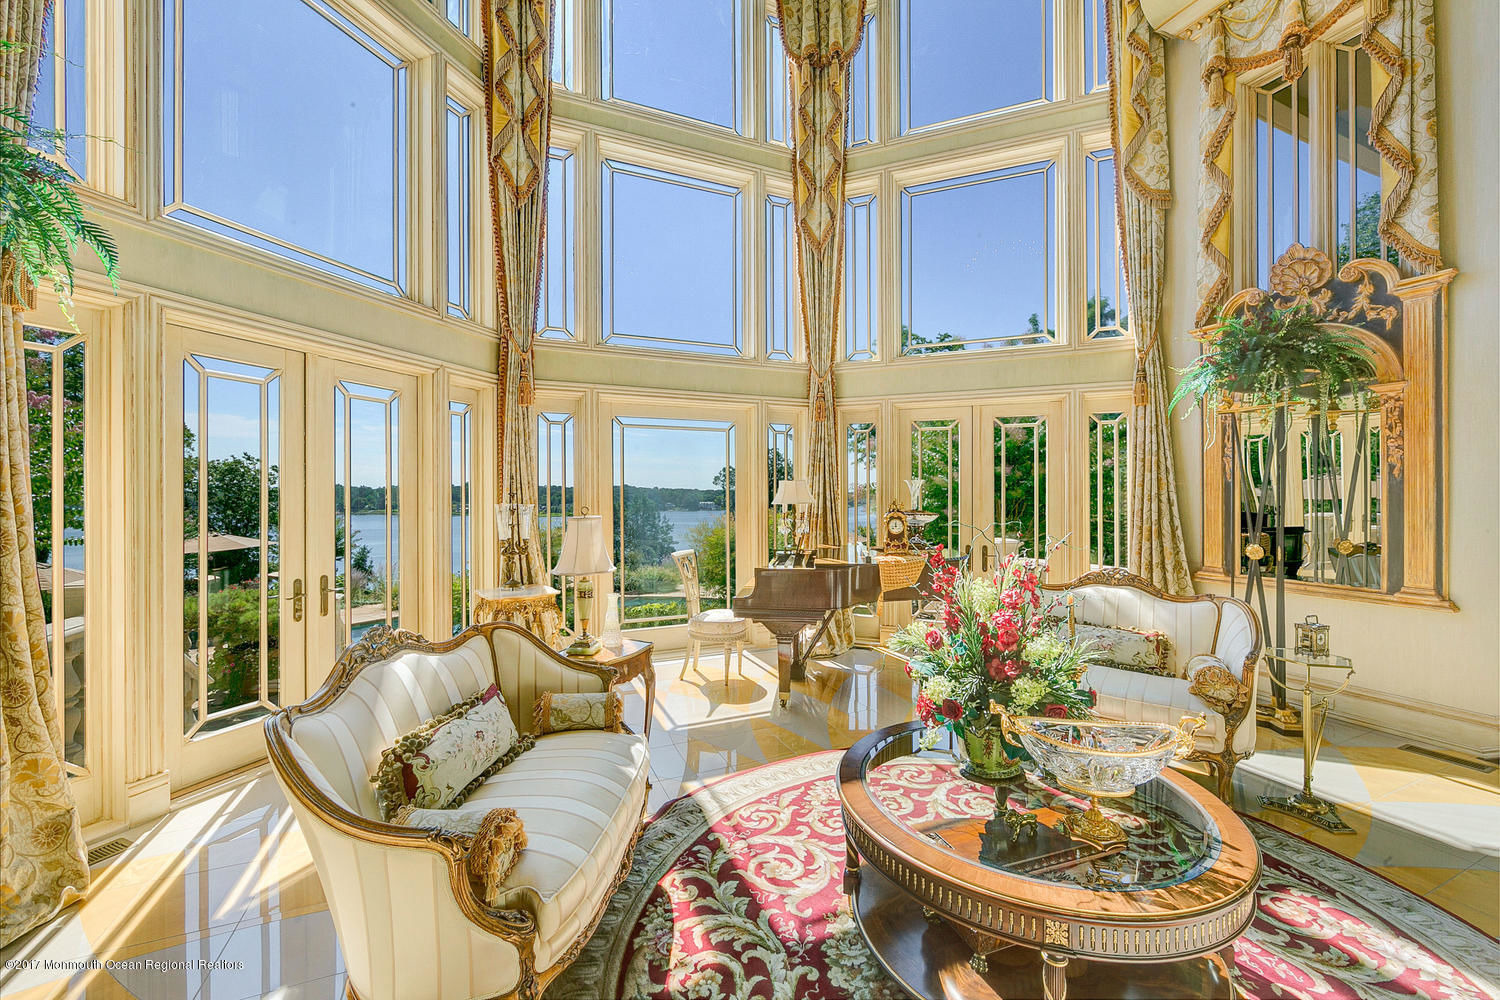 This magnificent château-style manor is surrounded by 4.15 acres of glorious terraced gardens overlooking the Navesink River and the Atlantic Ocean.